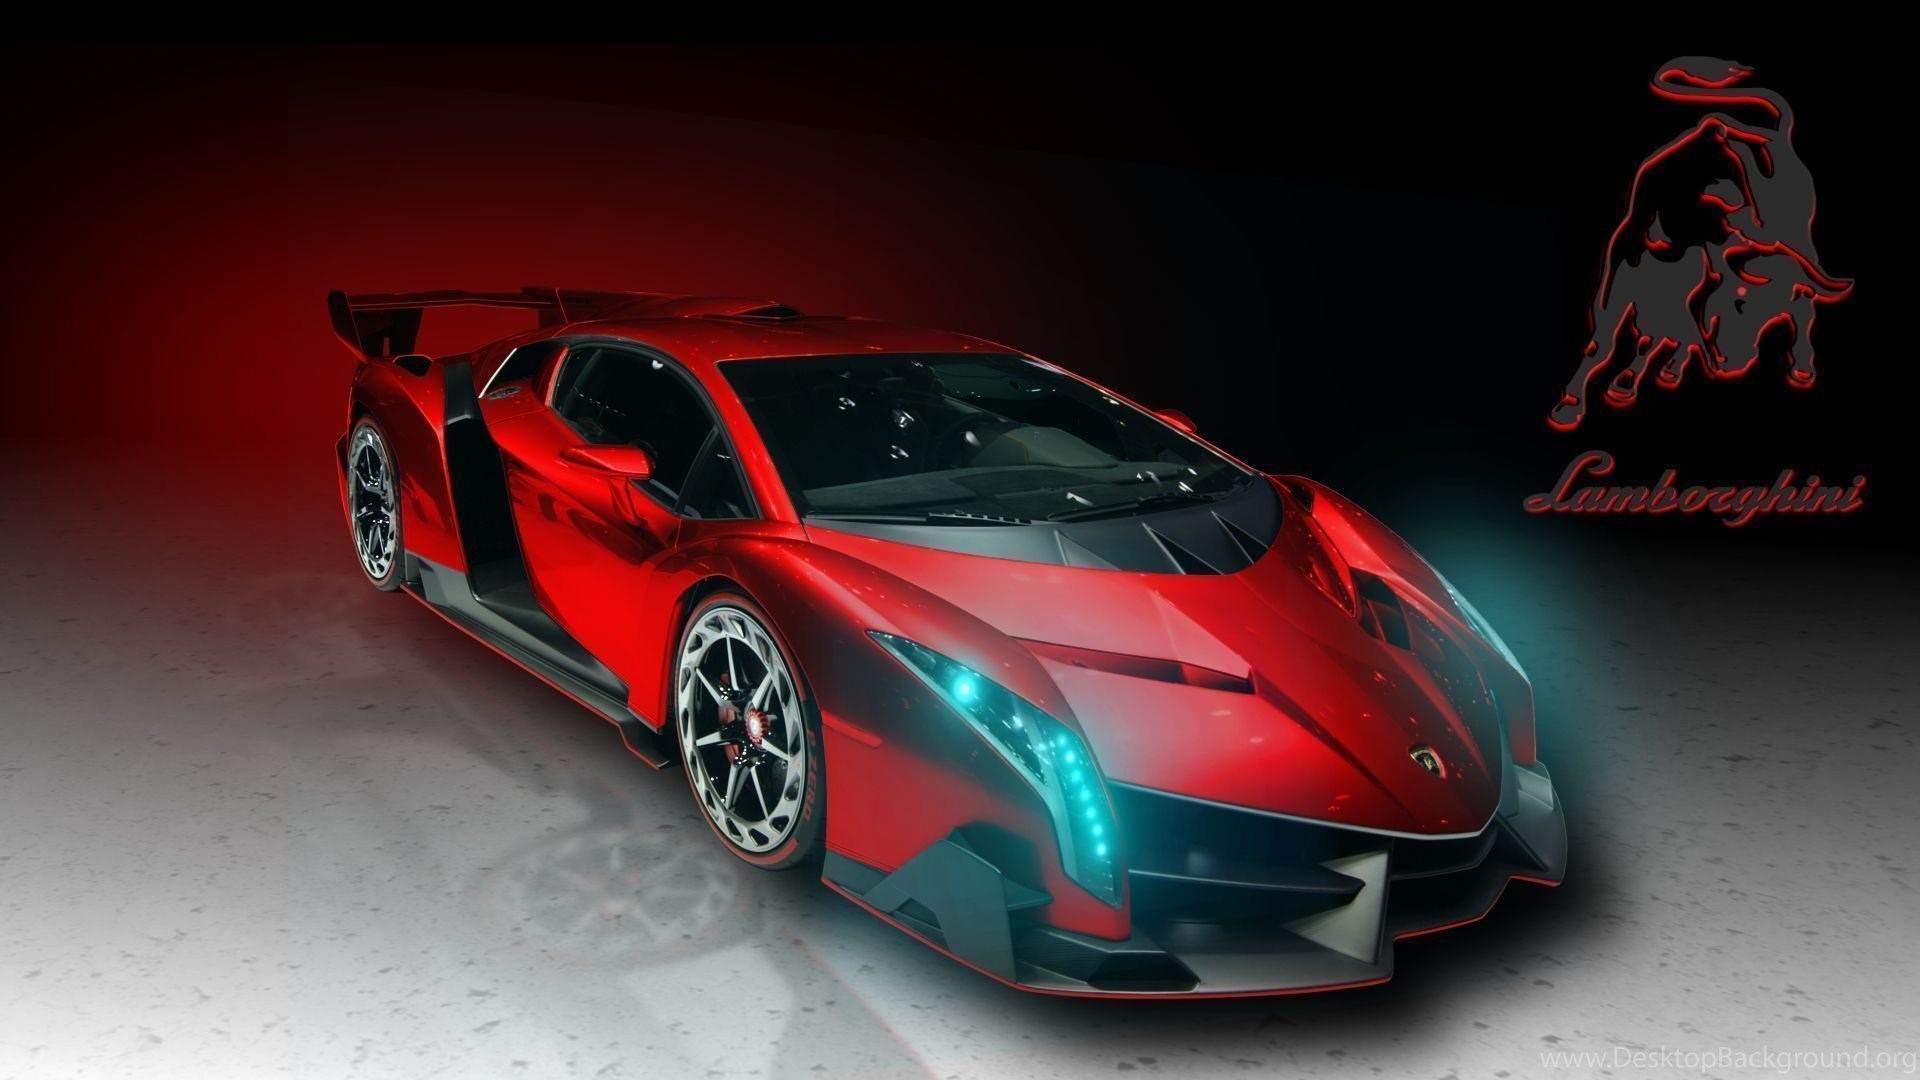 Lamborghini Veneno Wallpapers Hd Download Desktop Background